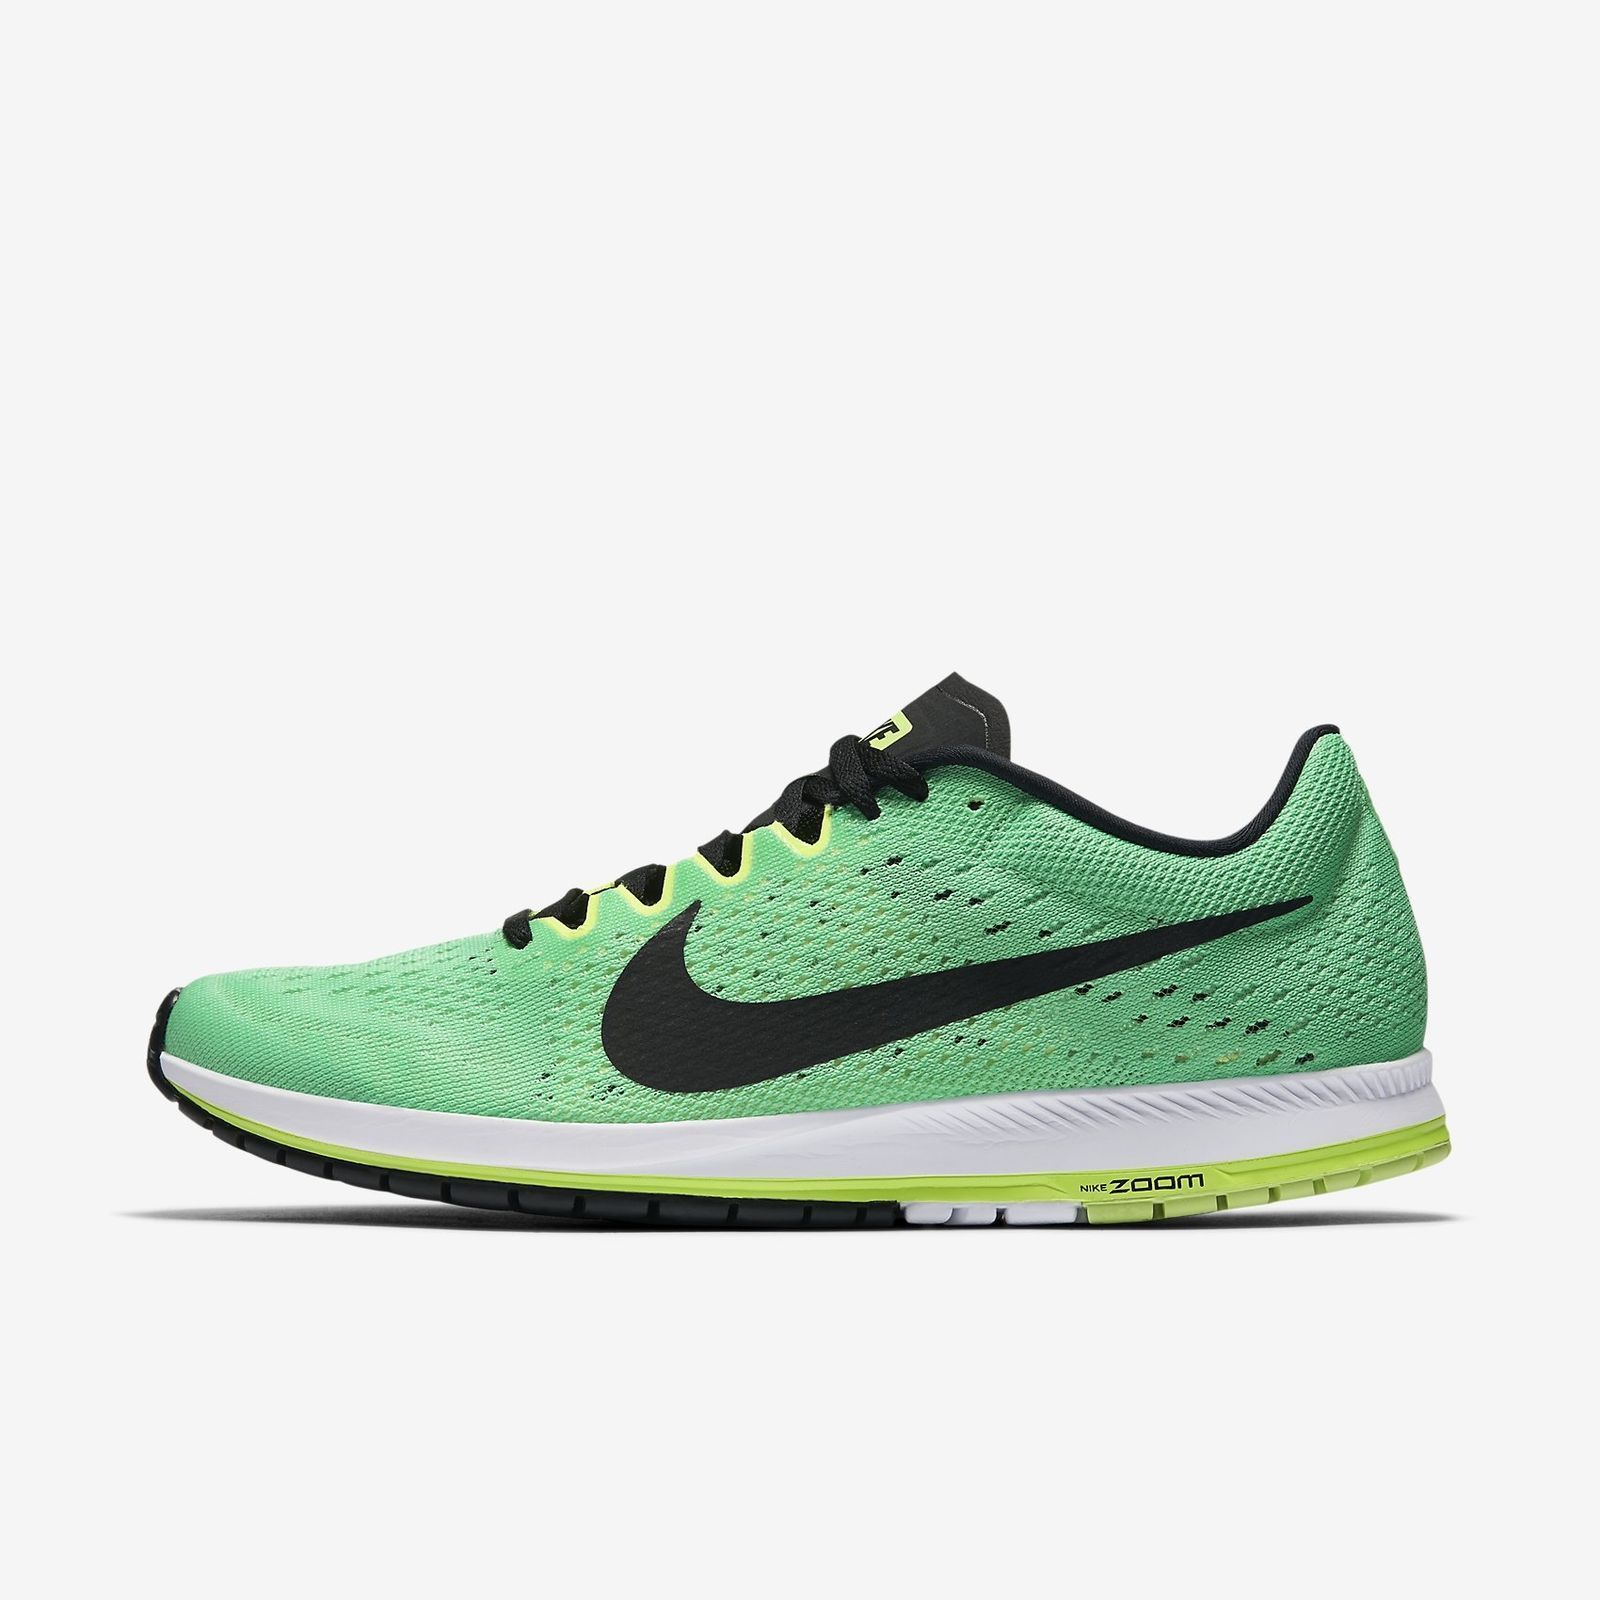 a2f241bfe7f92 Nike Men s Zoom Streak 6 Sneakers Size 7 to and 50 similar items. S l1600